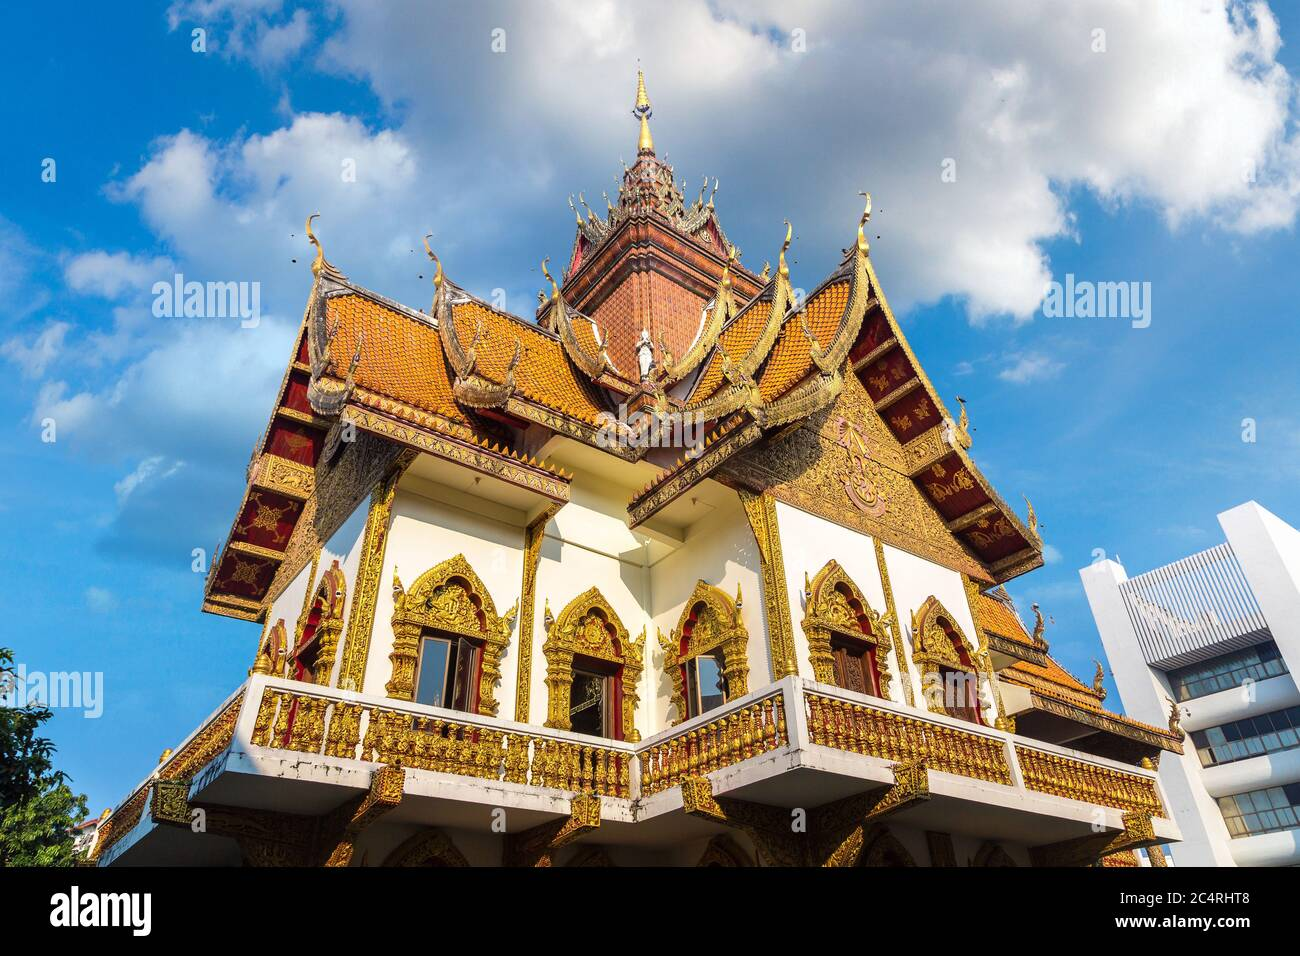 Wat Buppharam - Buddhists temple in Chiang Mai, Thailand in a summer day Stock Photo